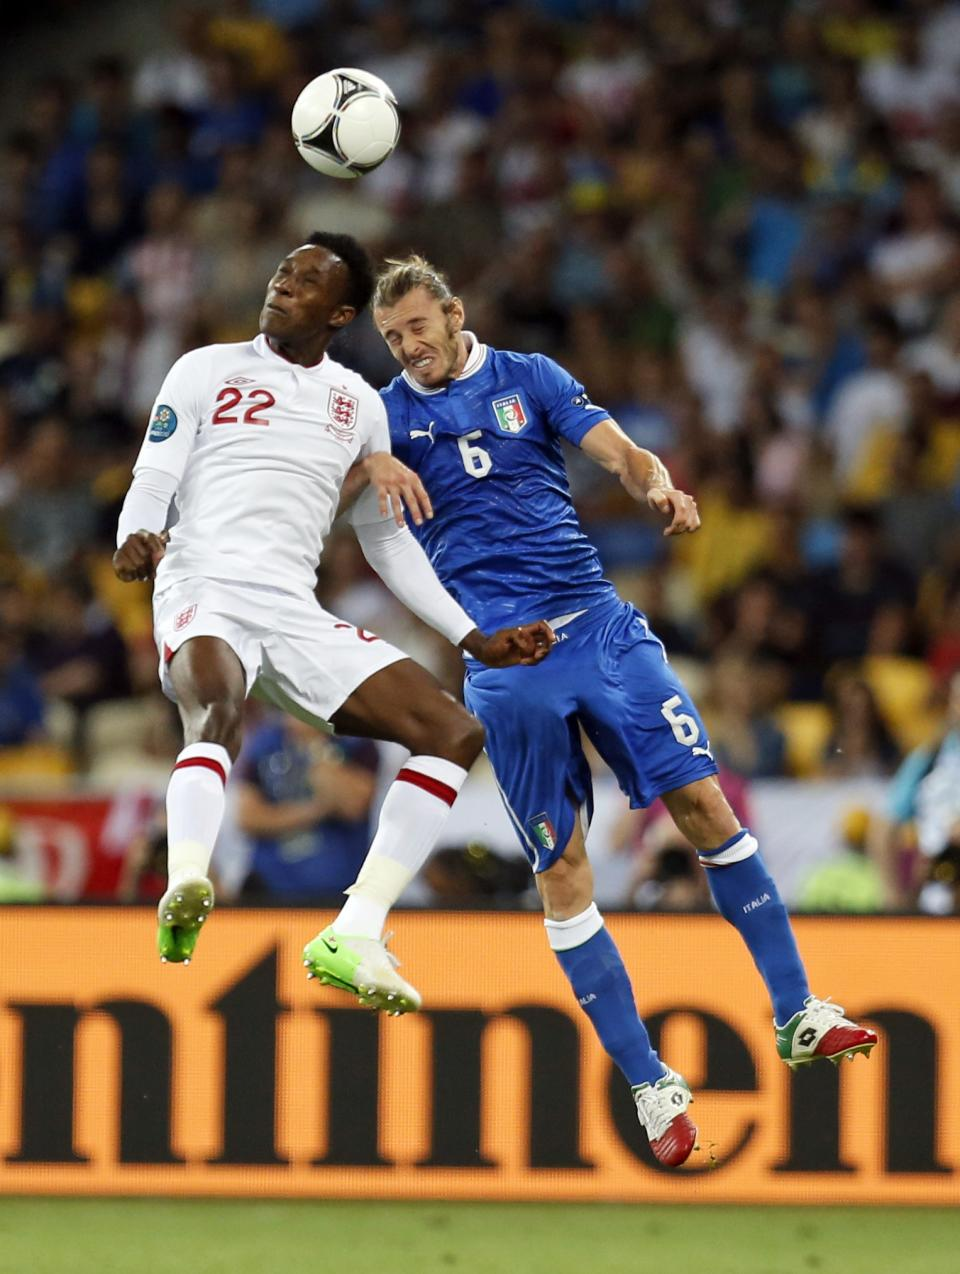 England's Danny Welbeck, left, and Italy's Federico Balzaretti jump for the ball during the Euro 2012 soccer championship quarterfinal match between England and Italy in Kiev, Ukraine, Sunday, June 24, 2012. (AP Photo/Matthias Schrader)